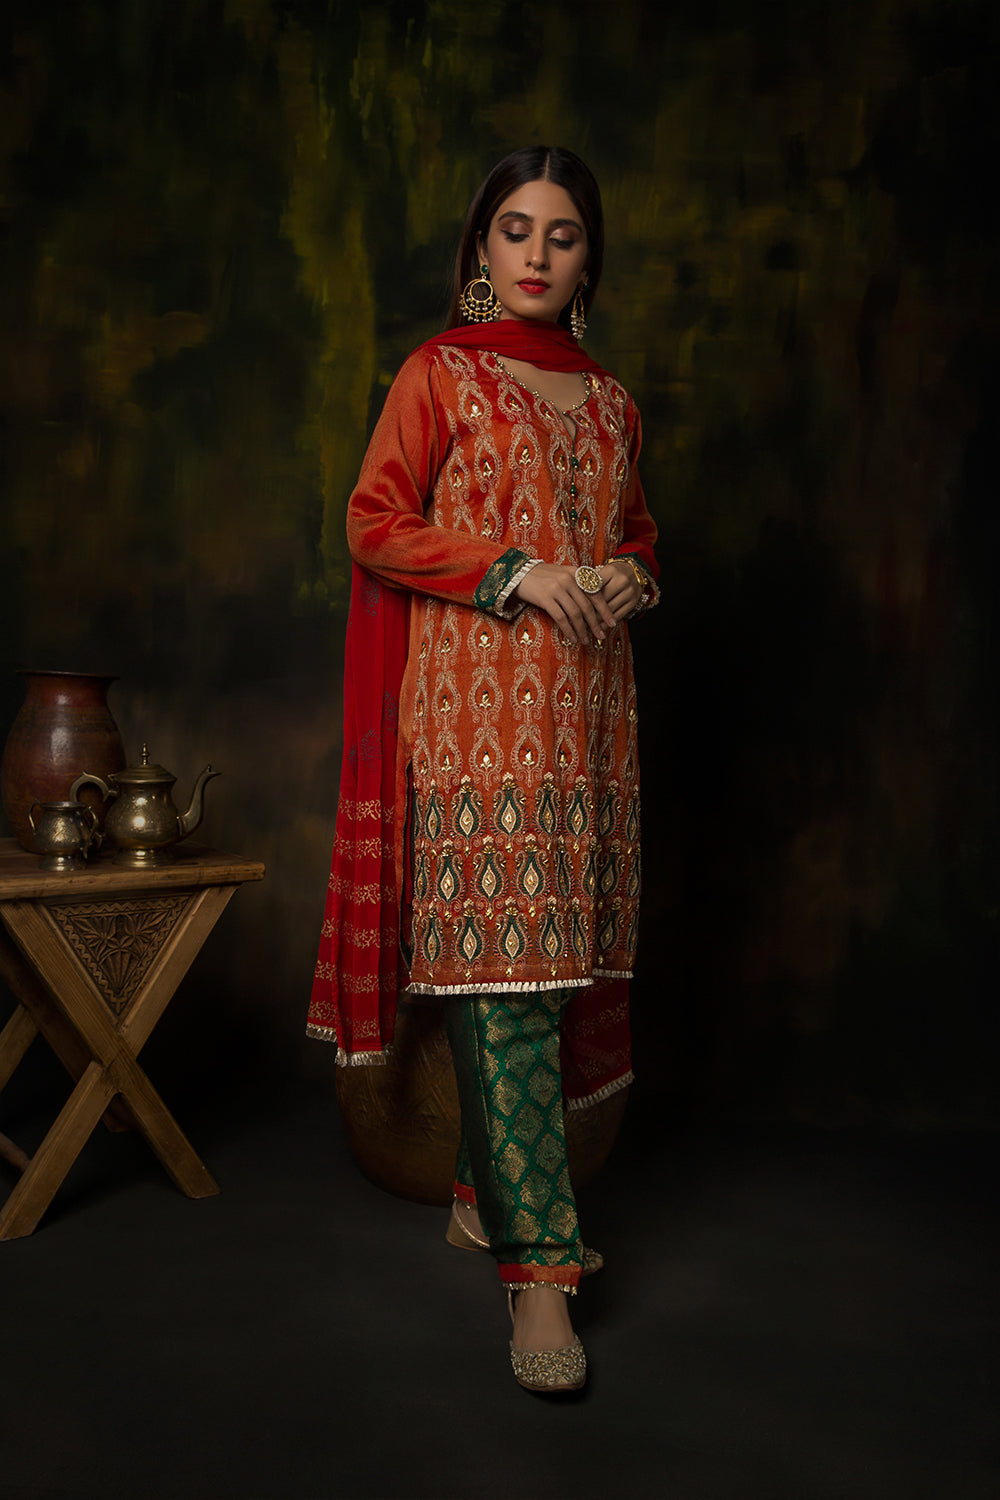 Ladies Formal 3 Piece Suit | Banarsi Khaddi Net | Orange & Green | LDD-01161